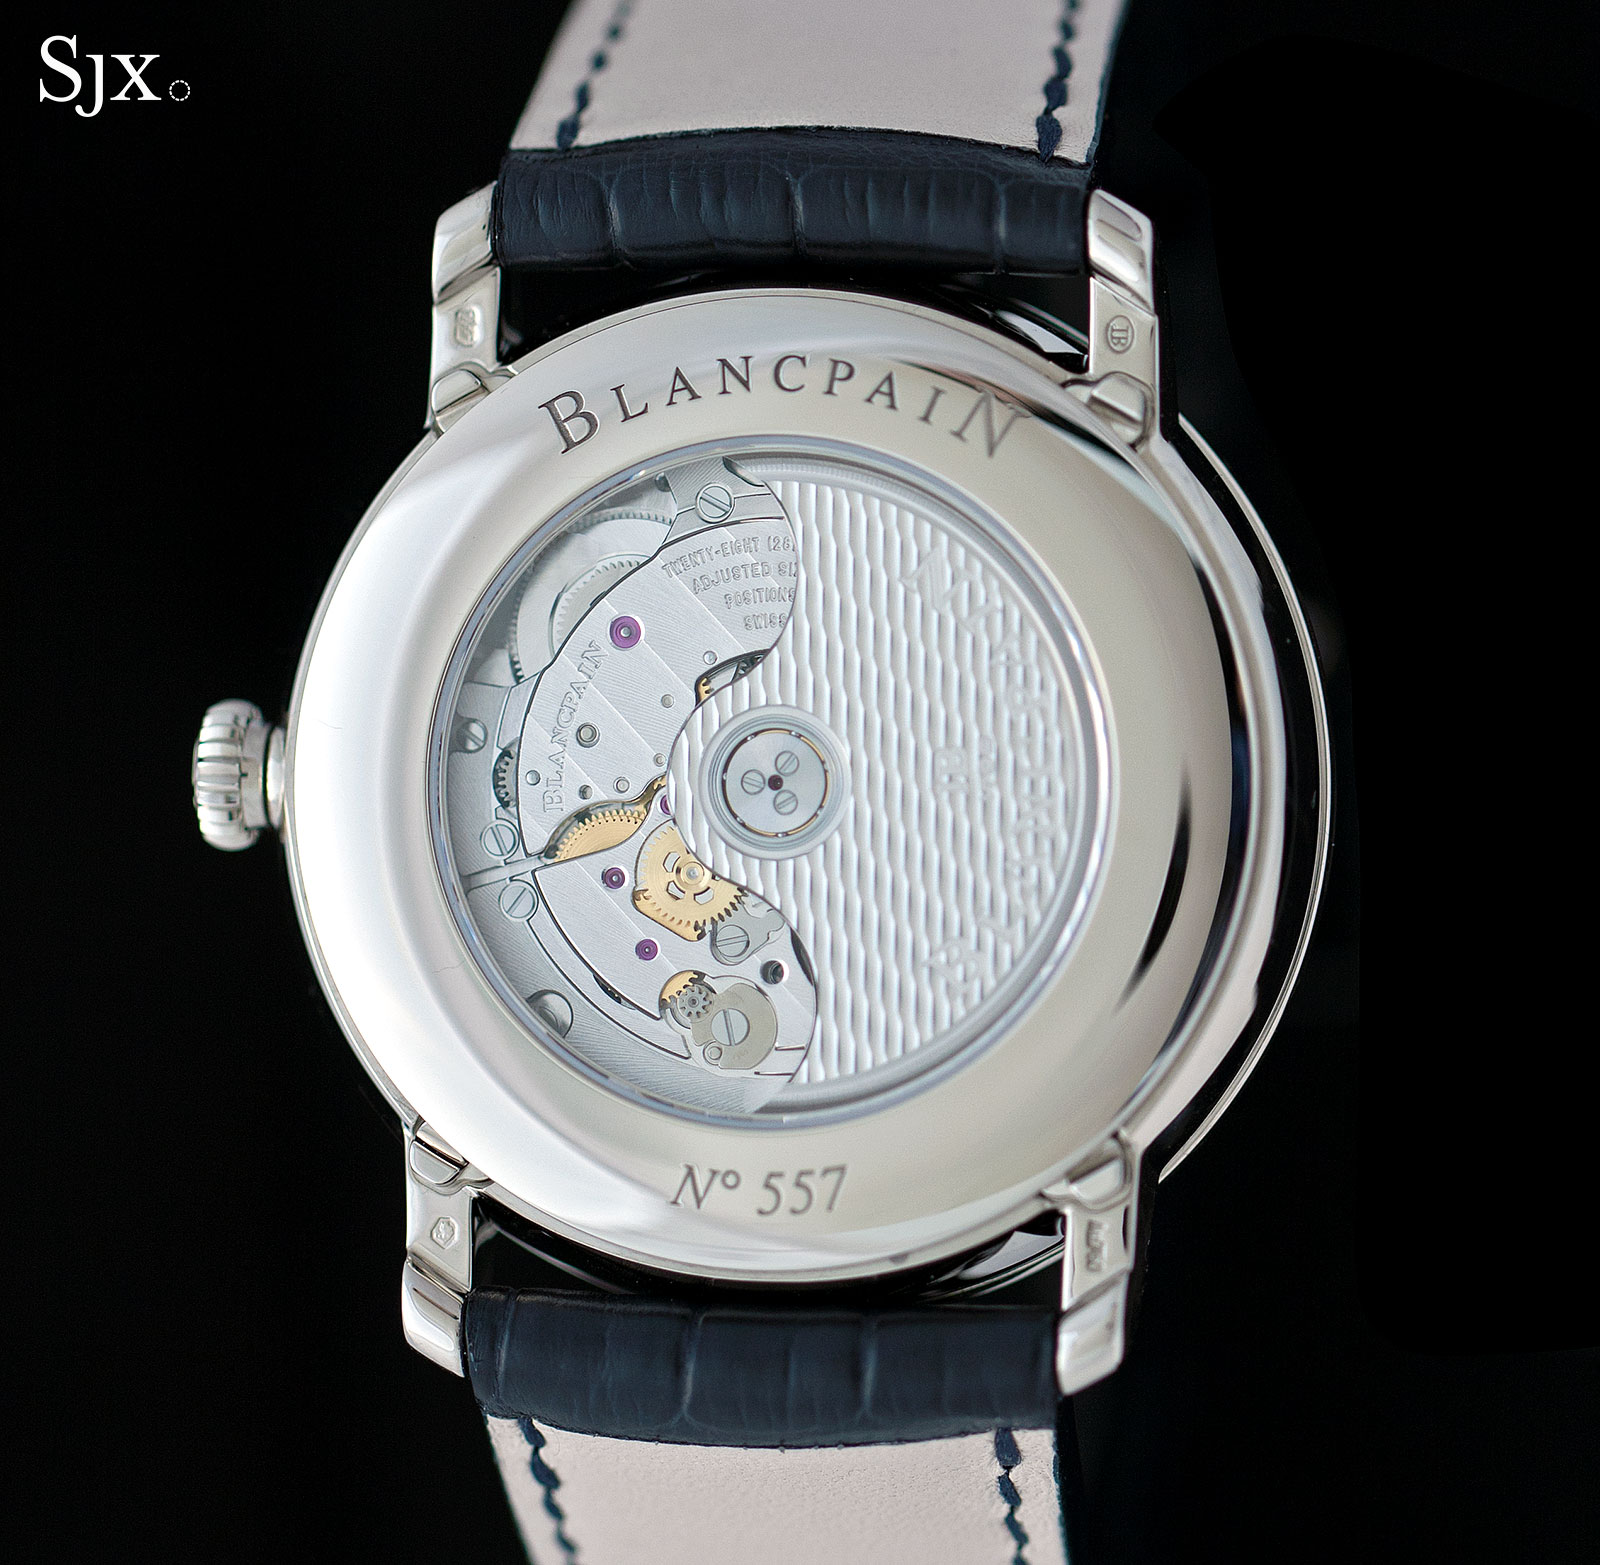 Blancpain Complete Calendar white gold 9